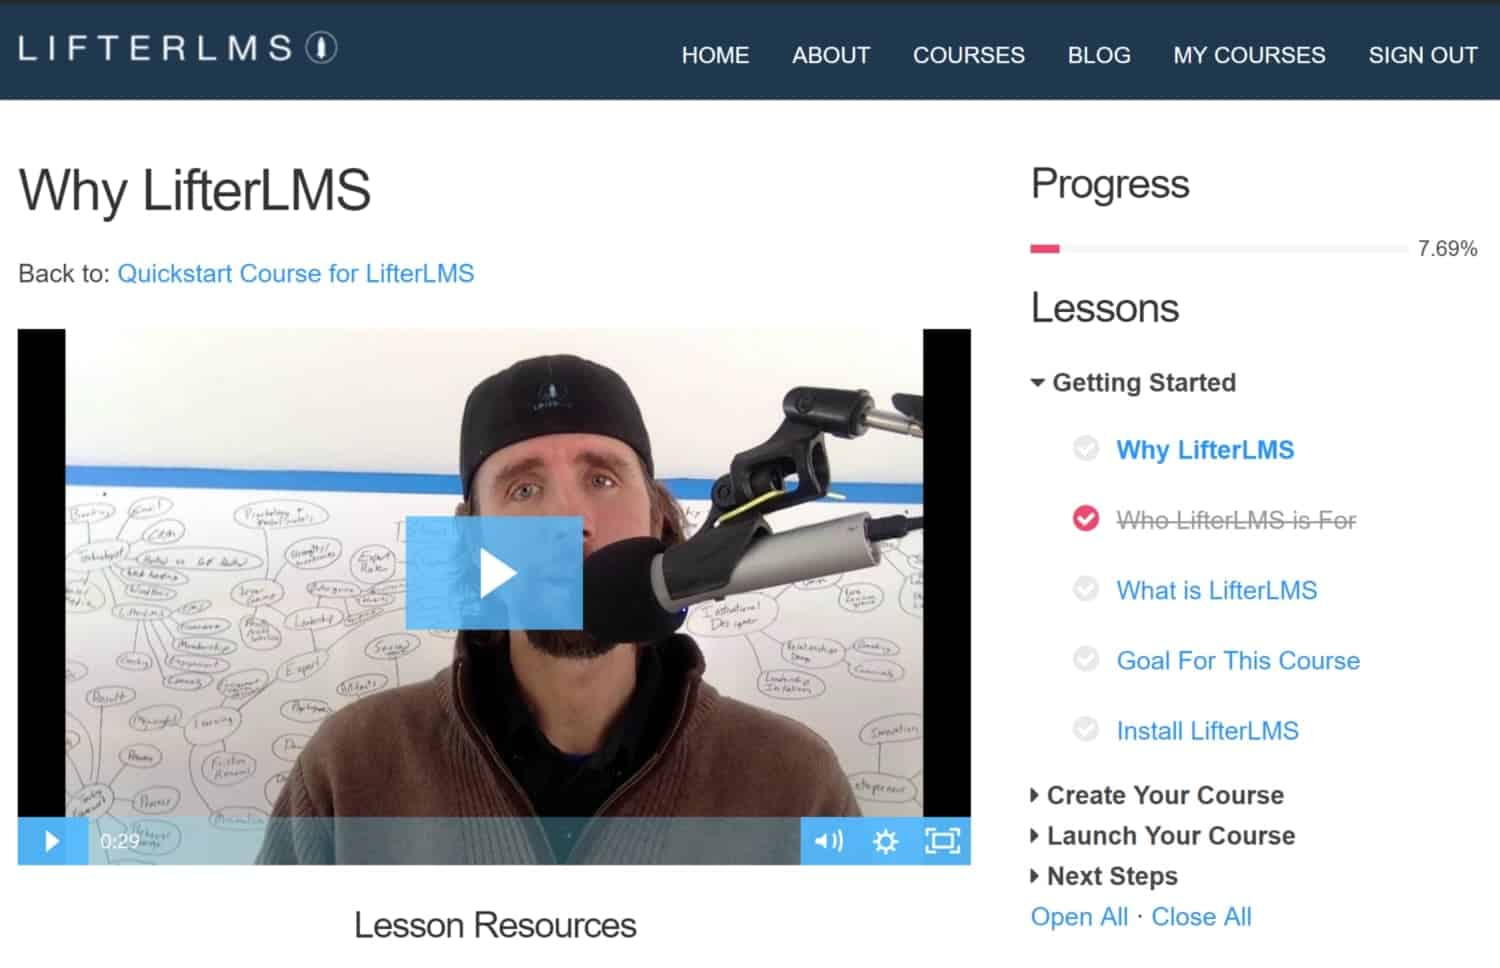 Screenshot of LifterLMS course progress tracking